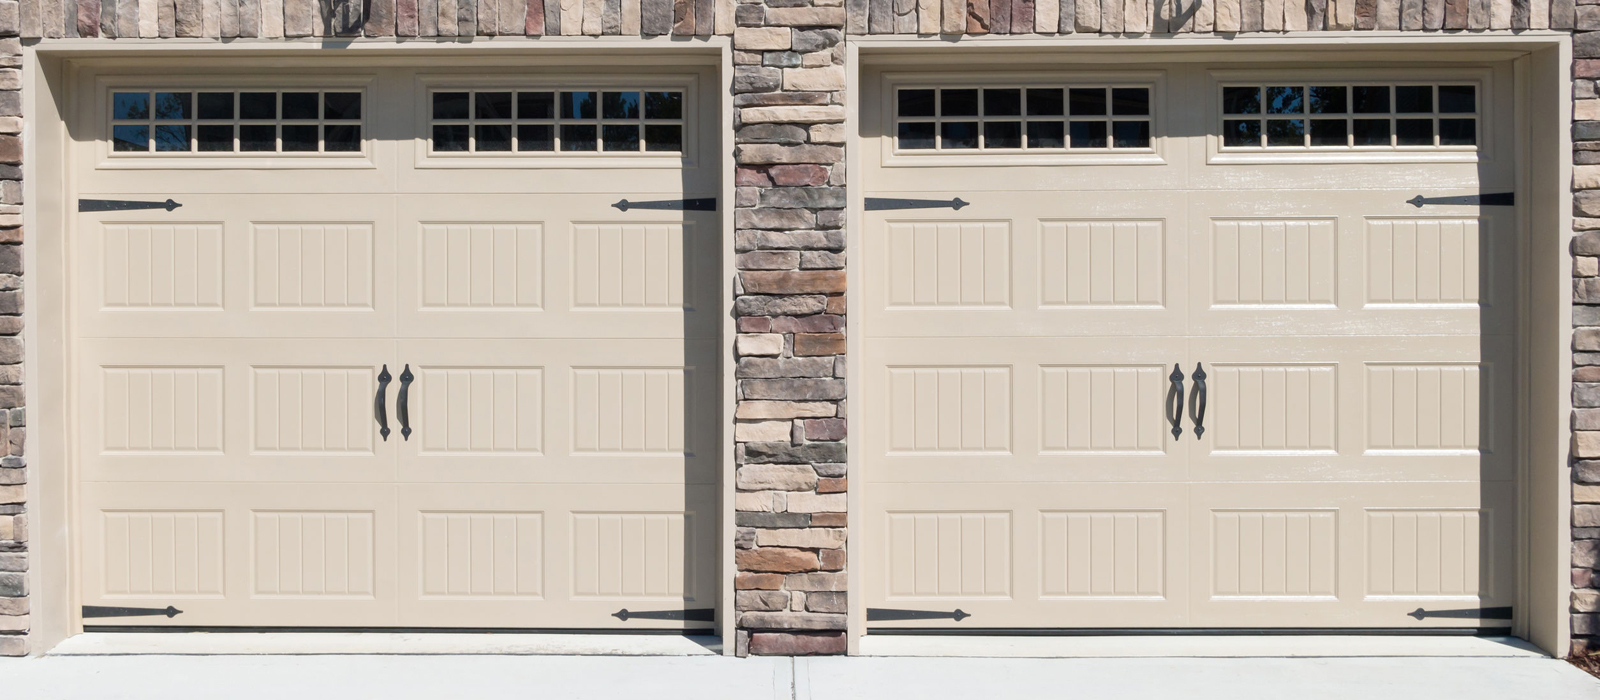 Garage Door Repair Modesto Ca Garage Designs